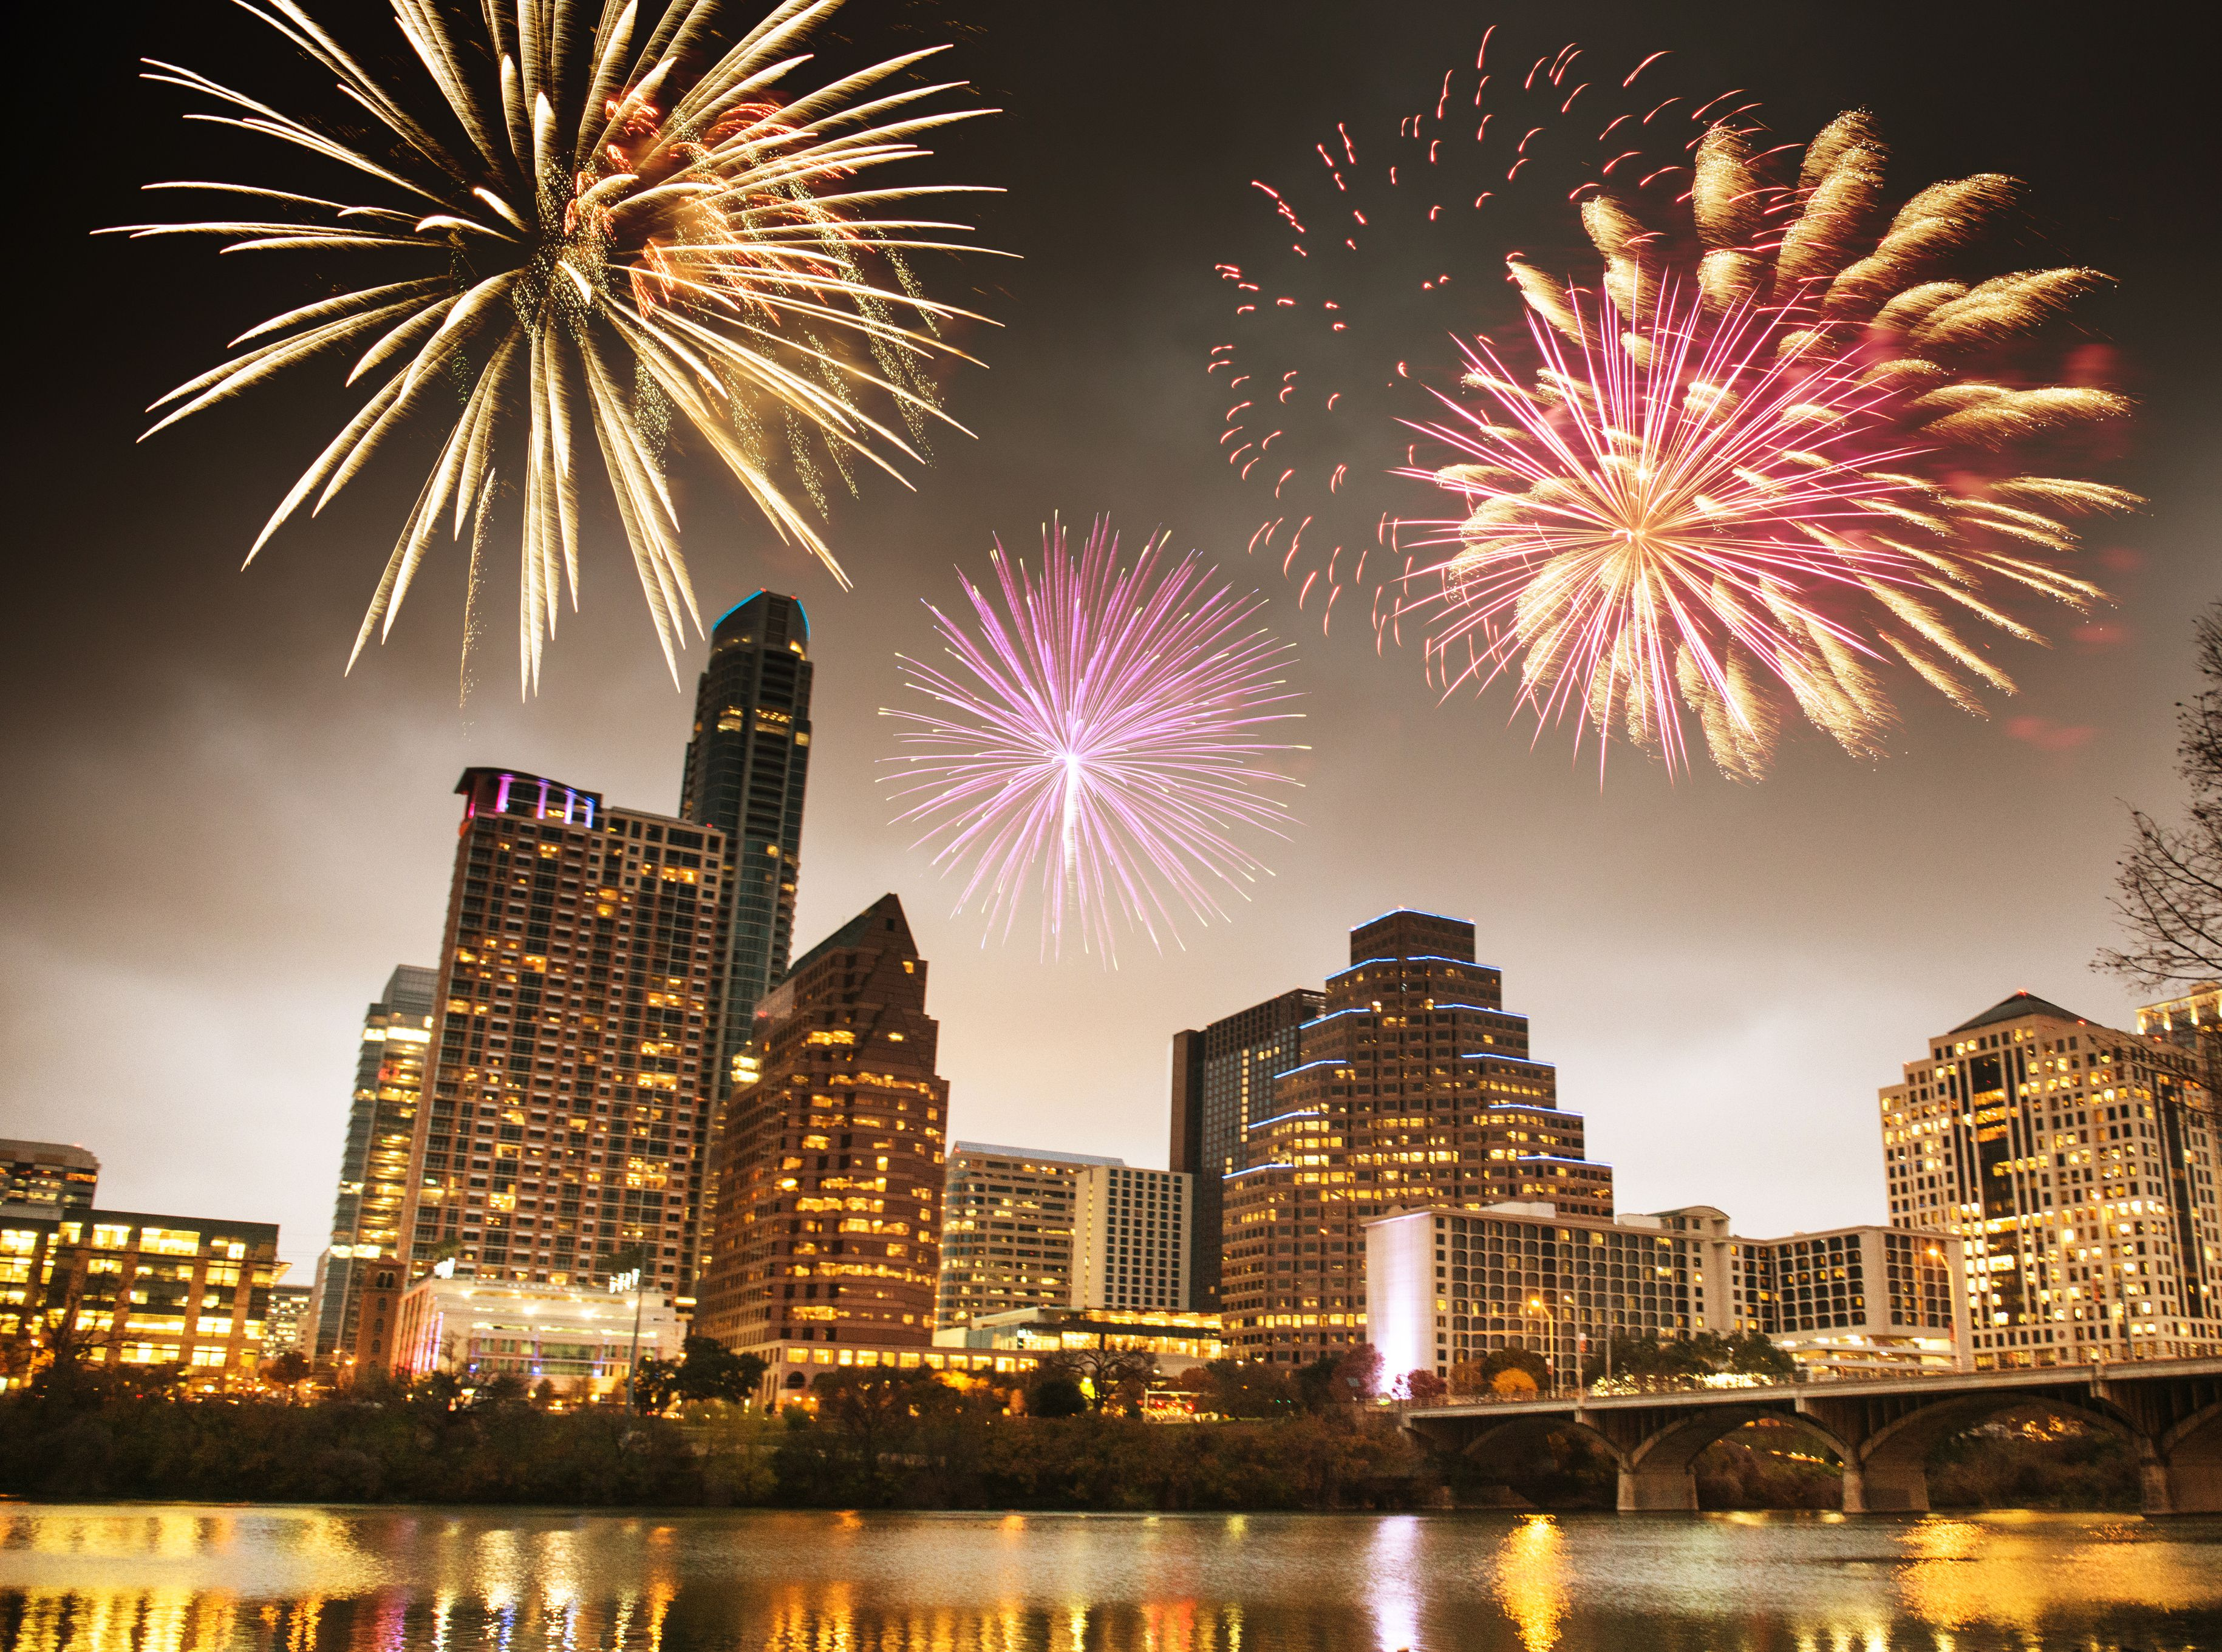 Top 5 Texas Towns To Spend The Fourth Of July